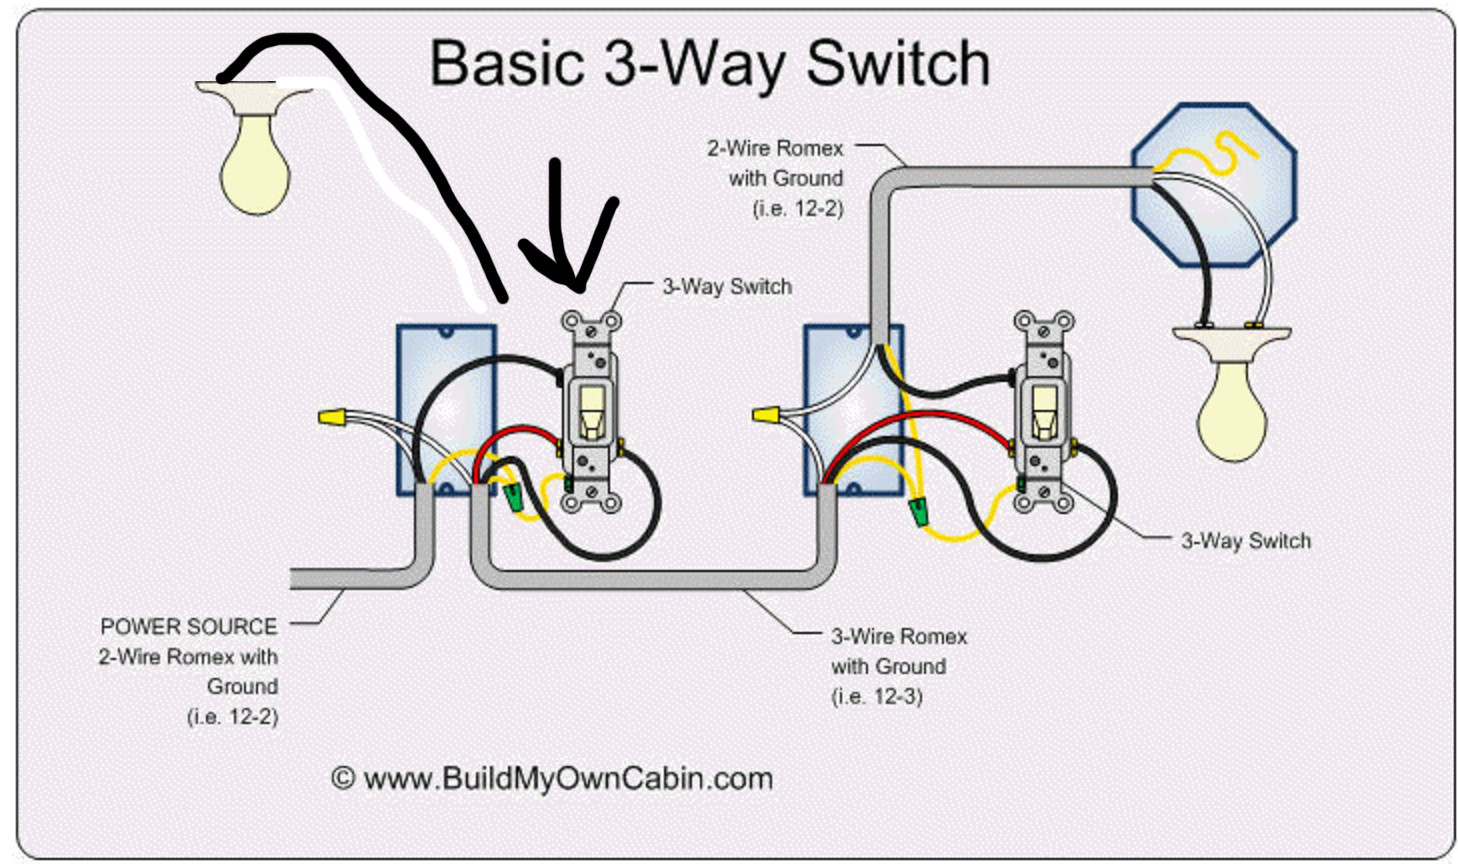 2 way switching wiring diagram 22kw generac generator lighting additional light to a 3 switch